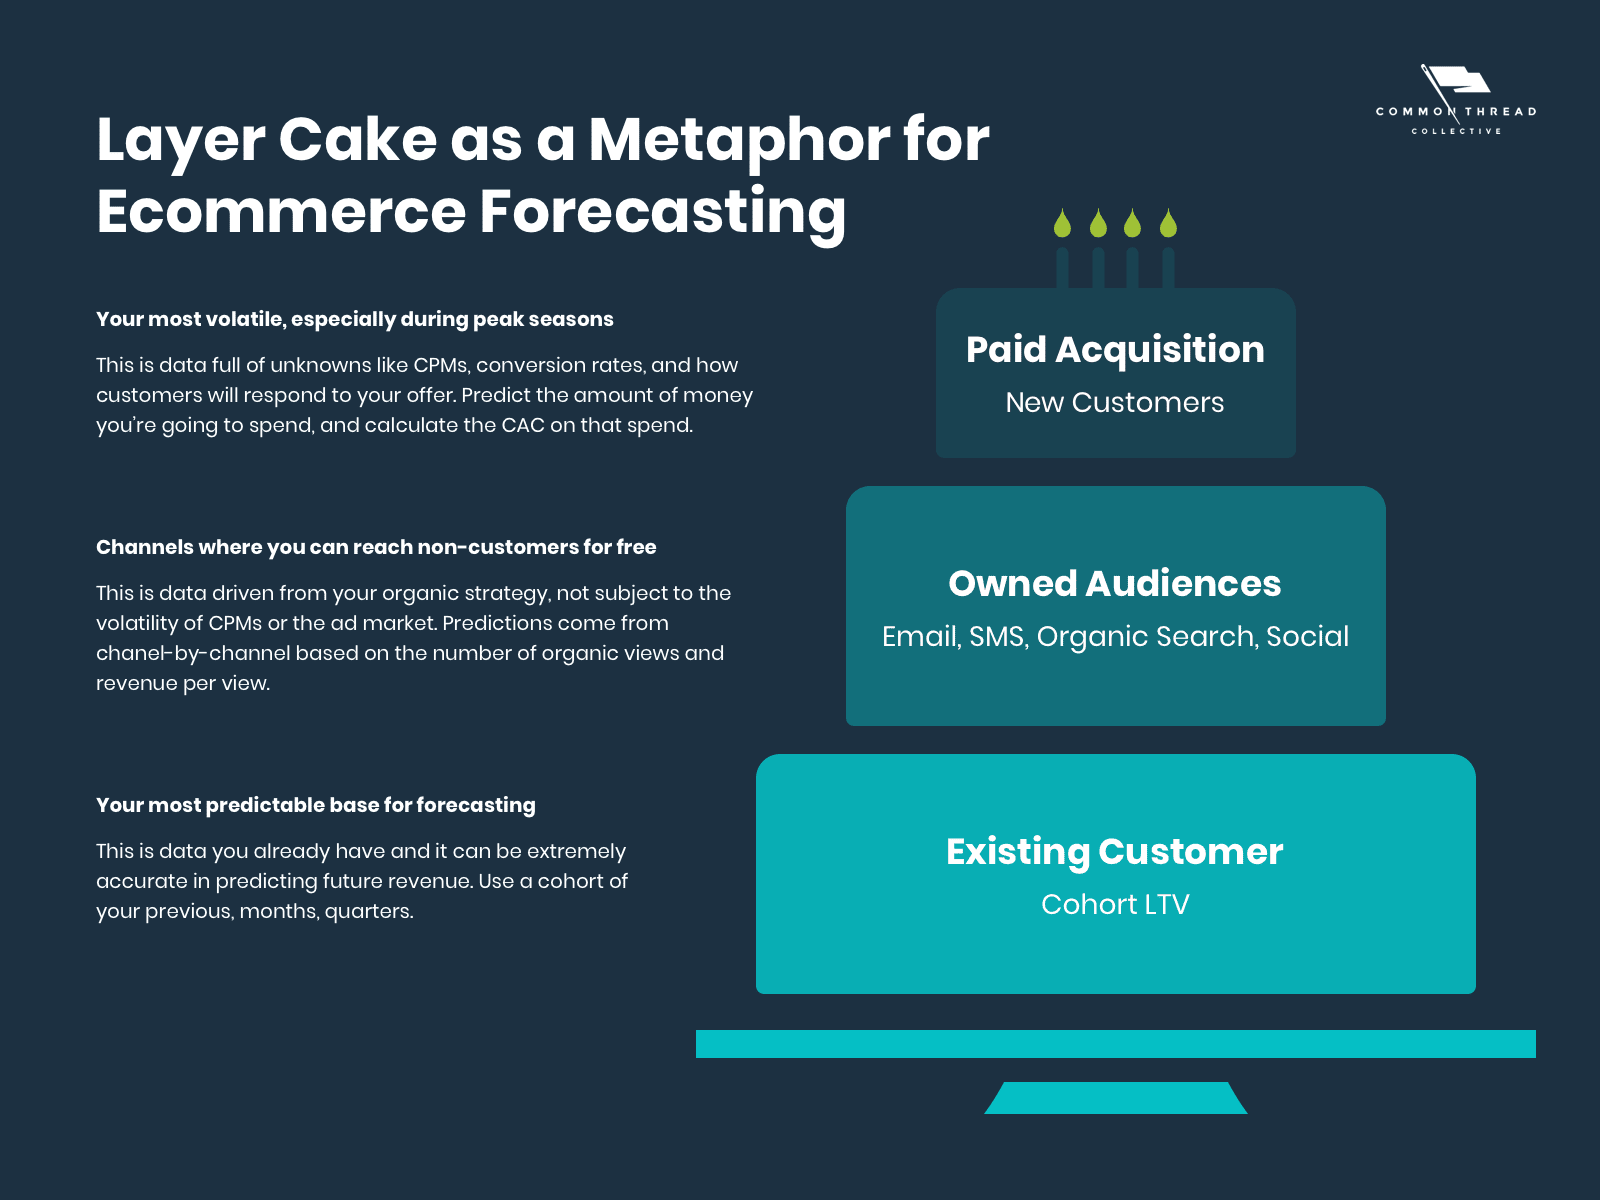 layer cake as a metaphor for ecommerce forecasting